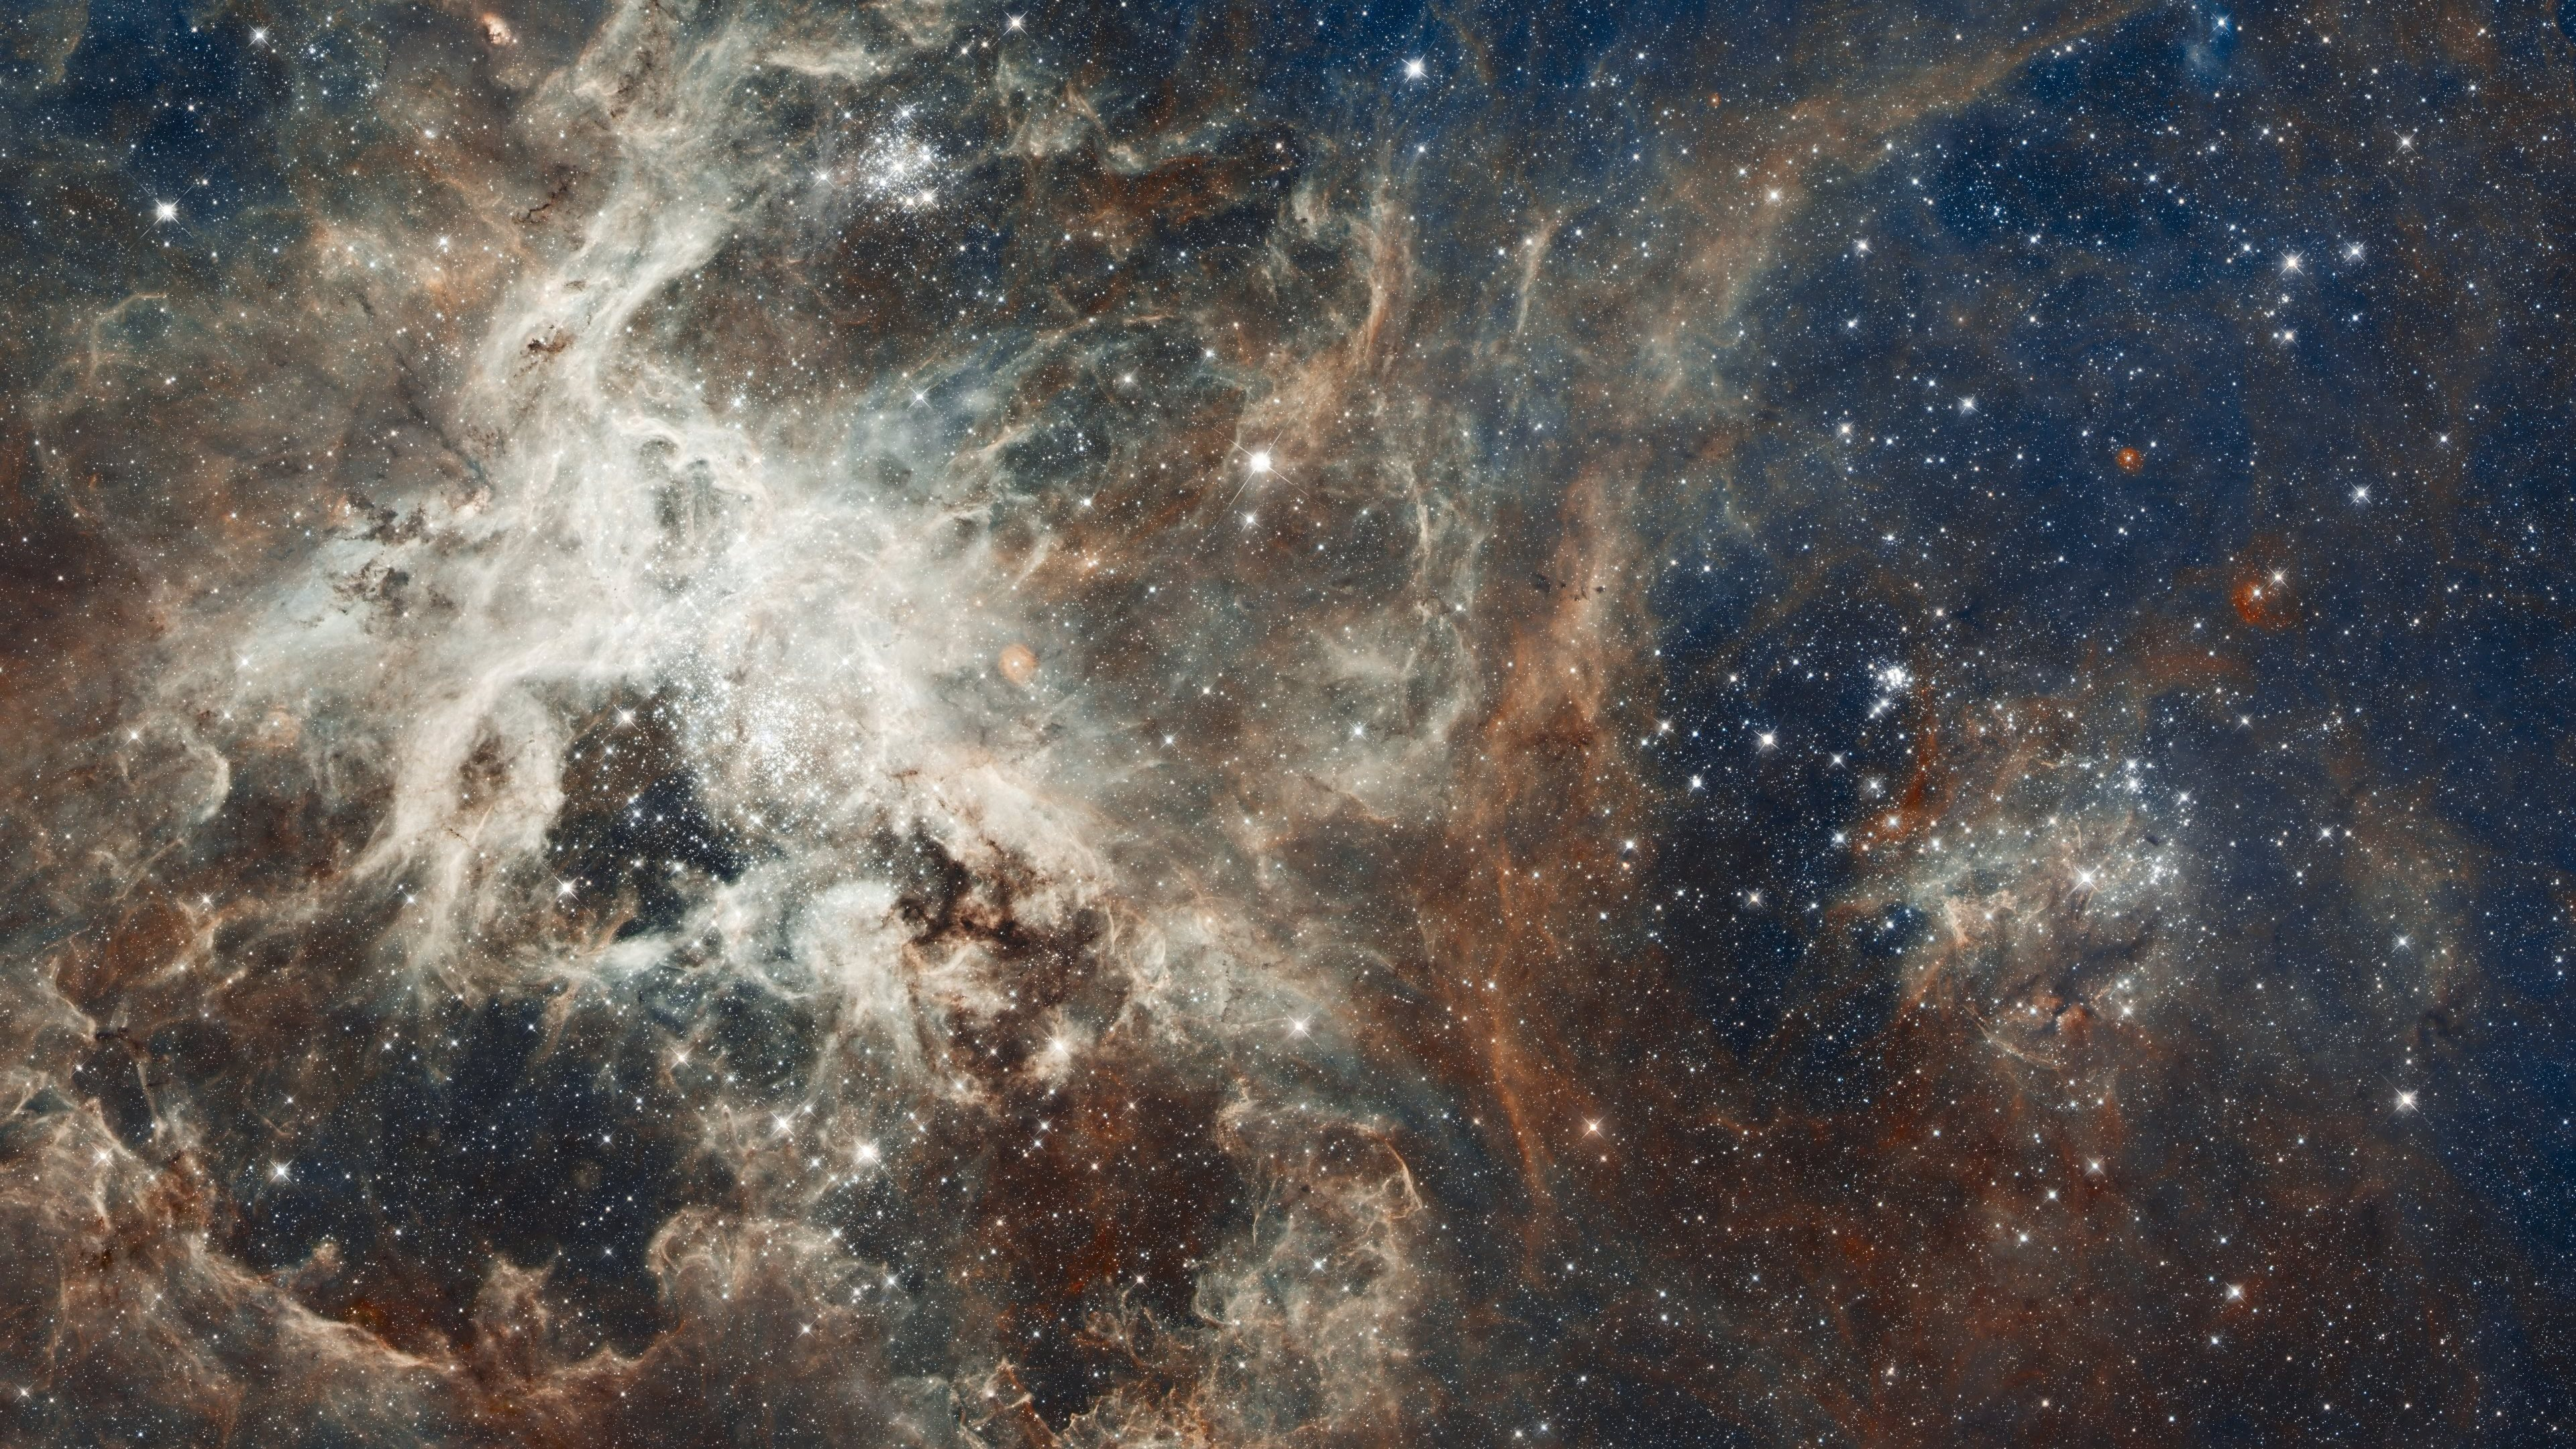 eso tarantula nebula wallpaper - photo #19